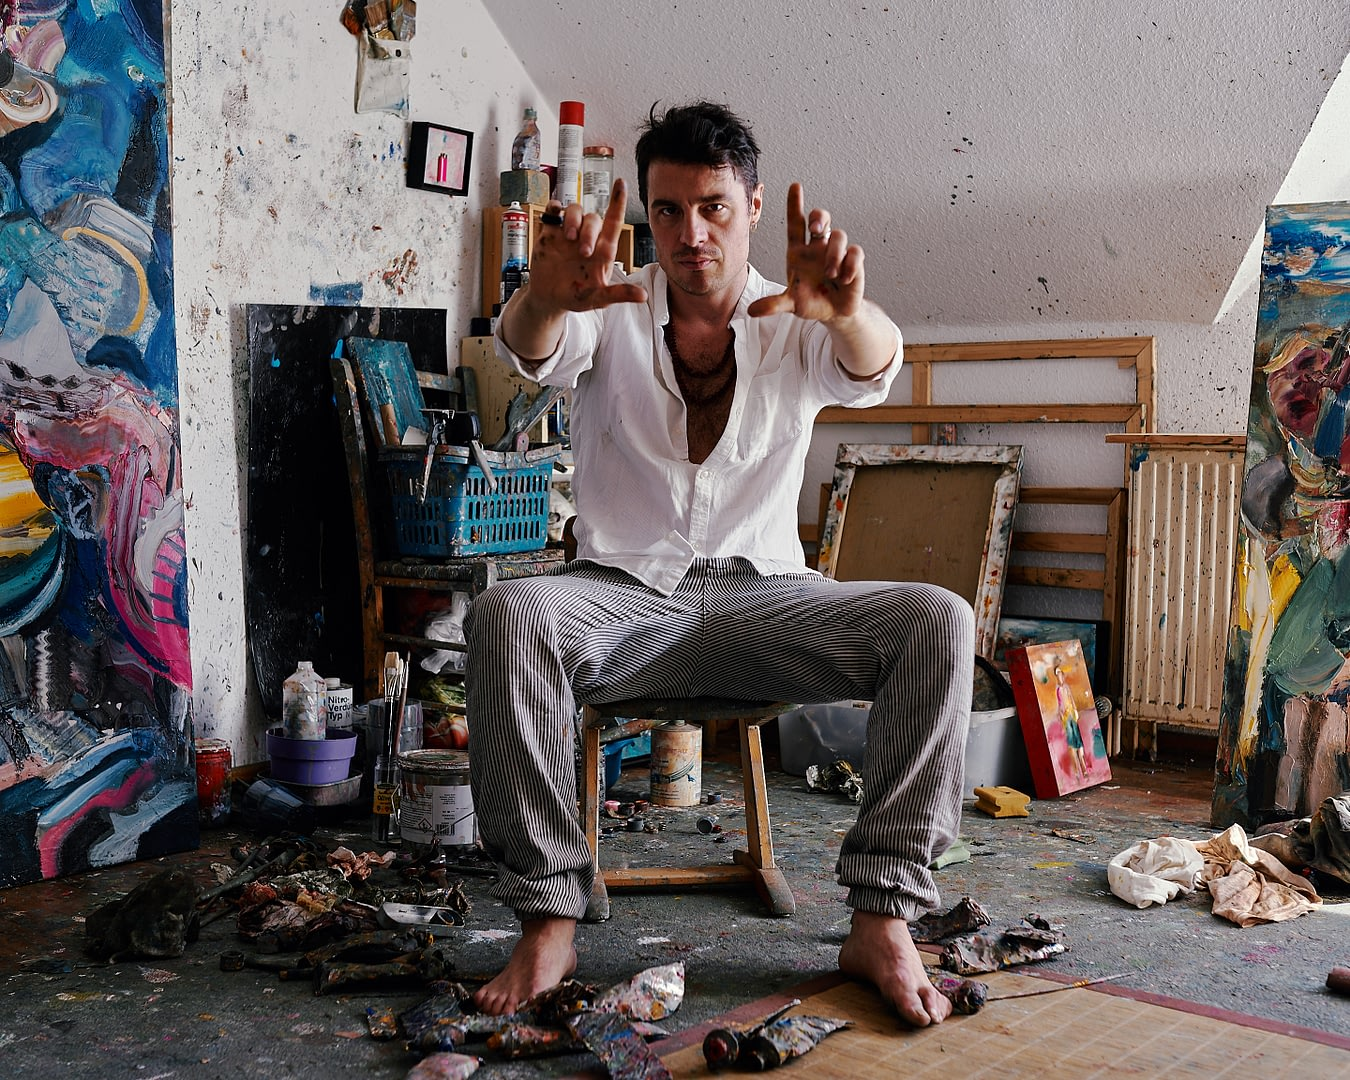 Artist Portrait of the Painter Stefano Bosis for 10011mag 2